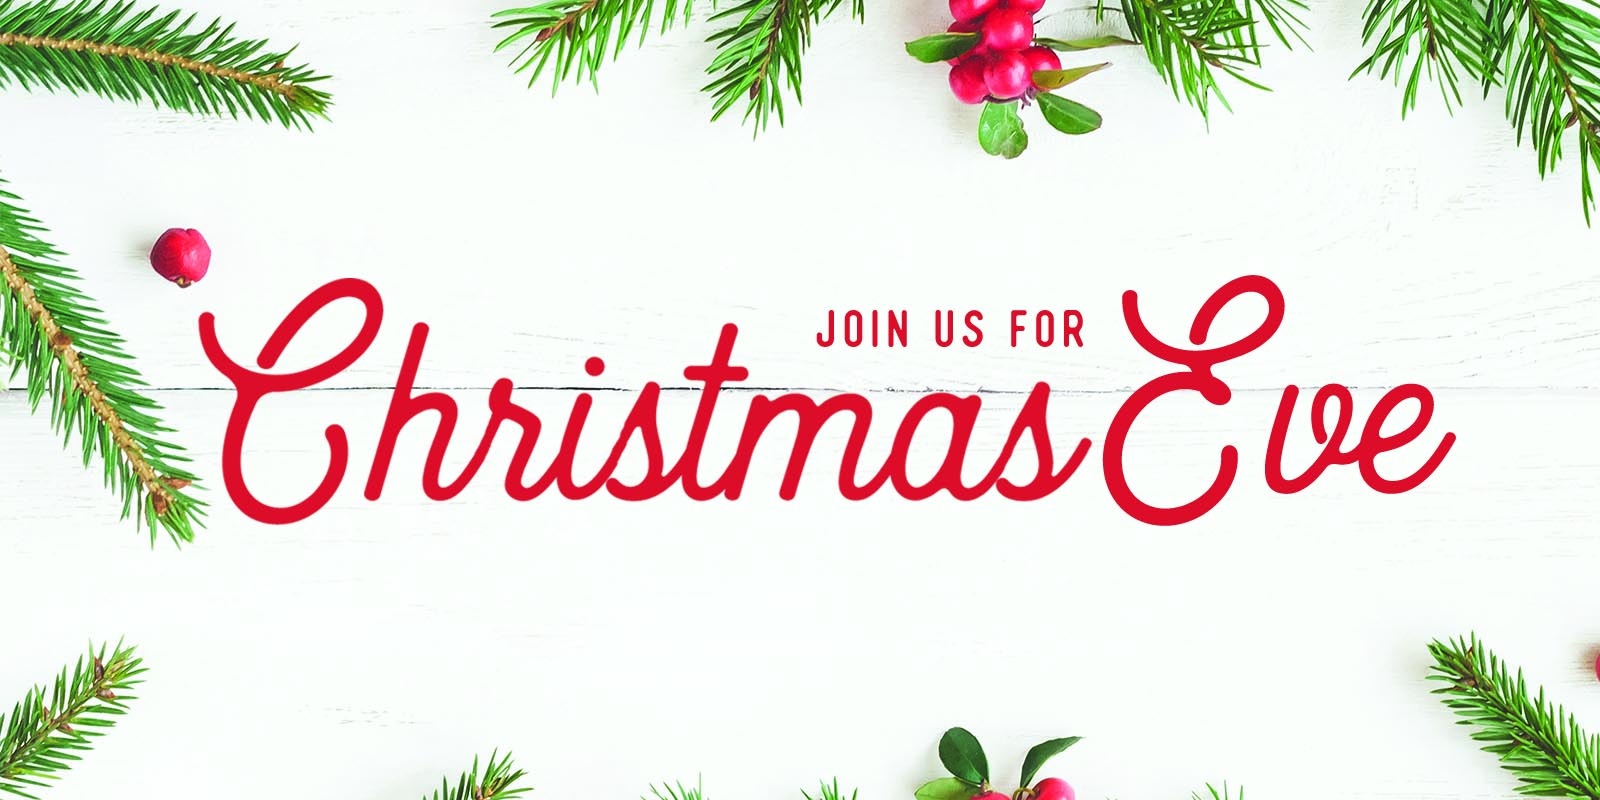 Christmas Eve Worship Services - Seaside United Methodist Church